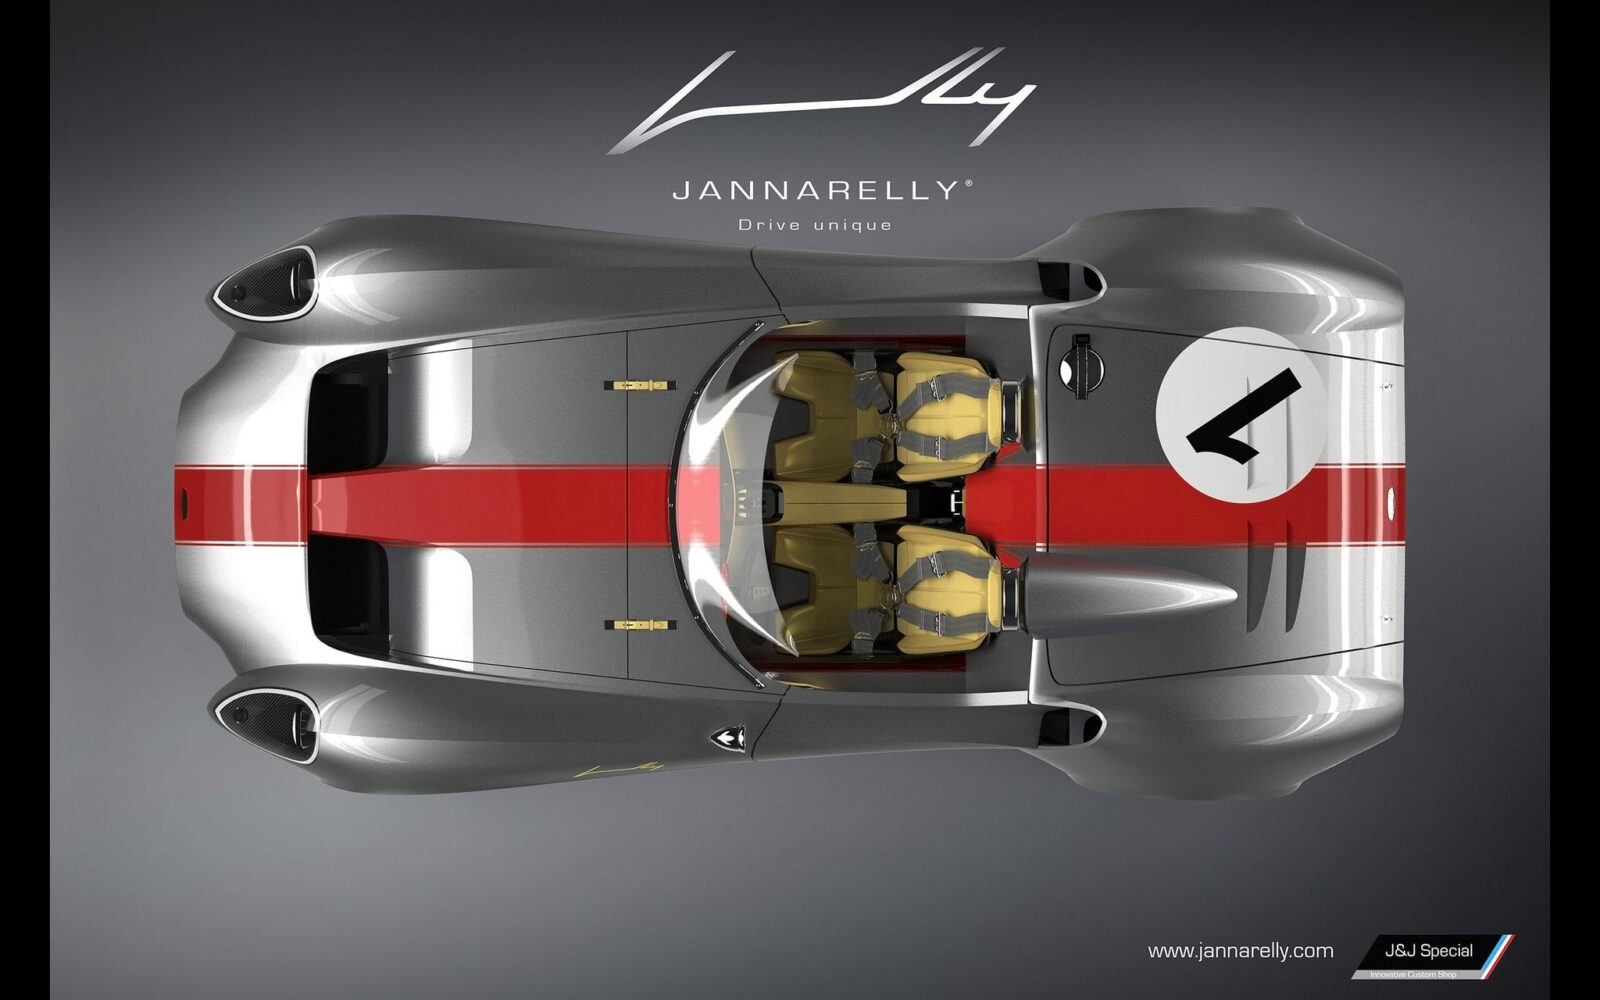 2016 Jannarelly picture